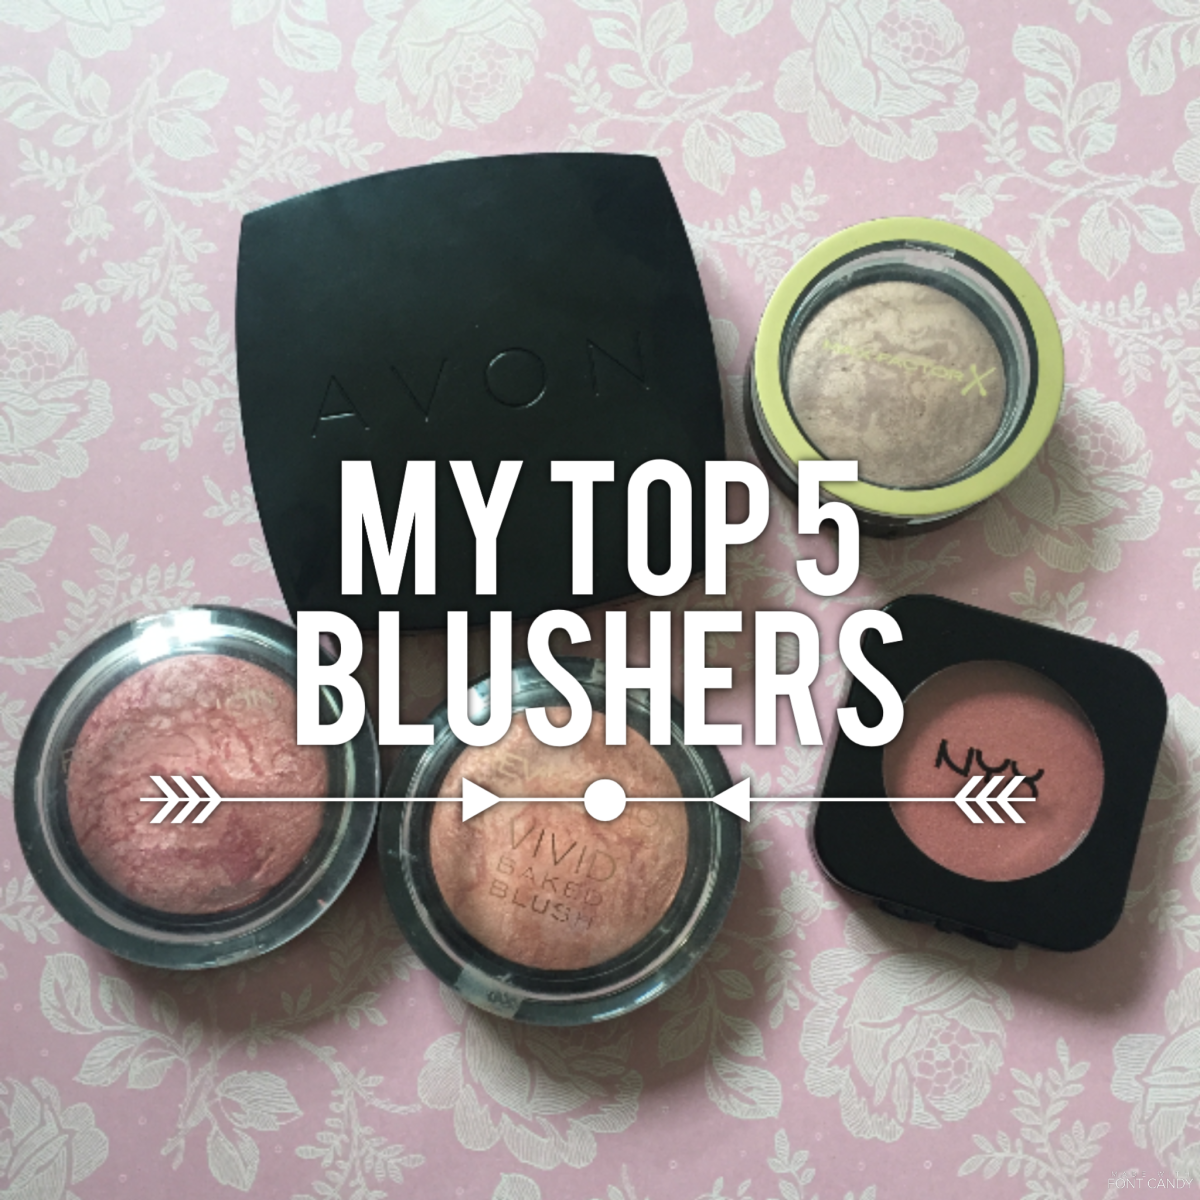 5 Blushers I've Been Loving This Year